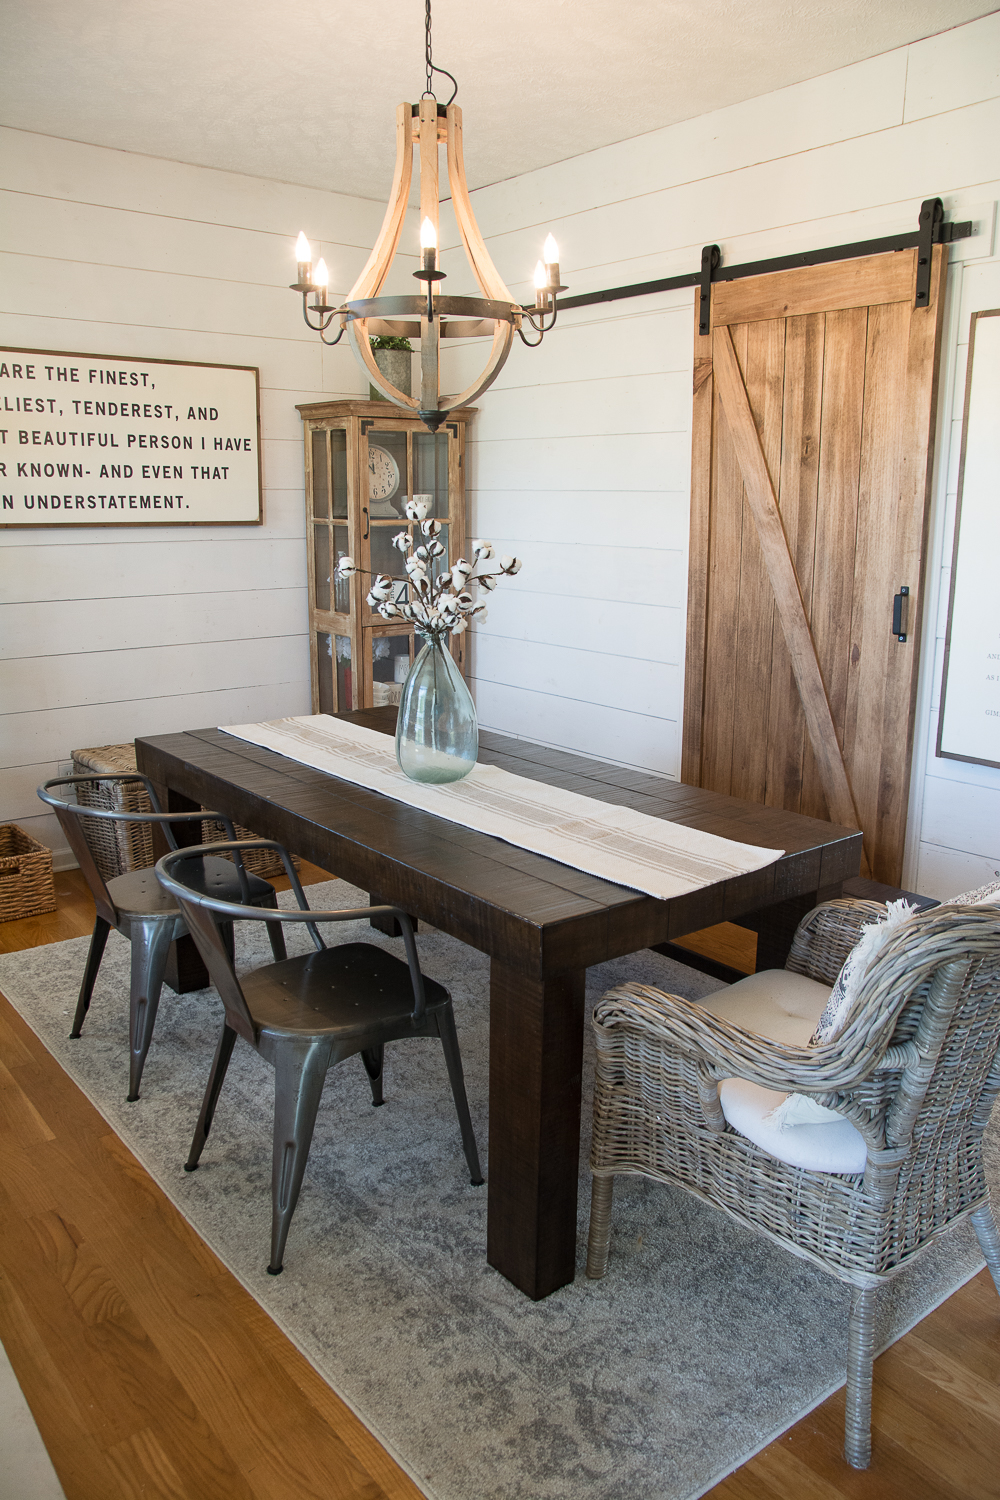 DIY Farmhouse Dining Room! See how we added shiplap walls, a barn door and new lighting to create the perfect #farmhouse look on a budget! And how you can do it too!